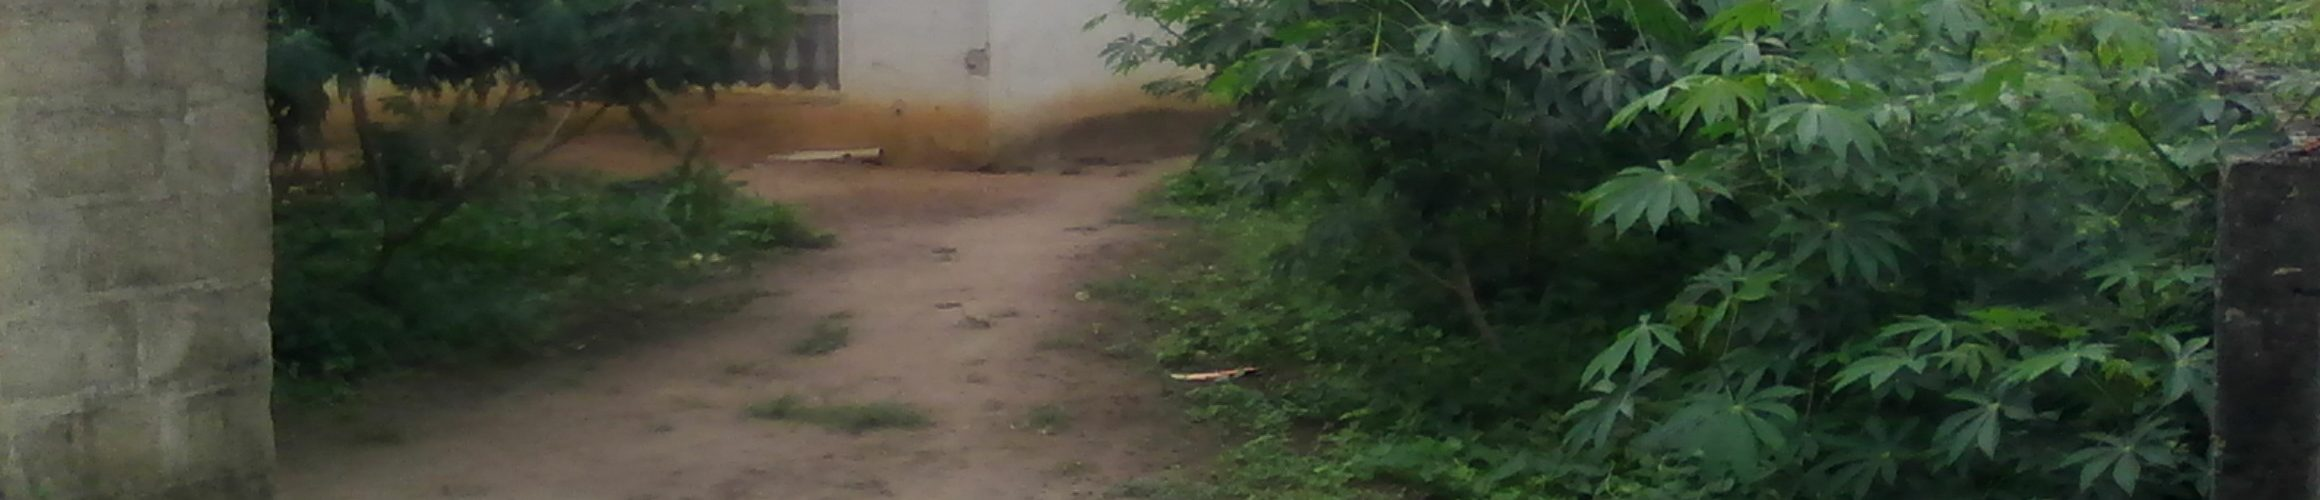 Bungalow house for sale Totowu Ogun State